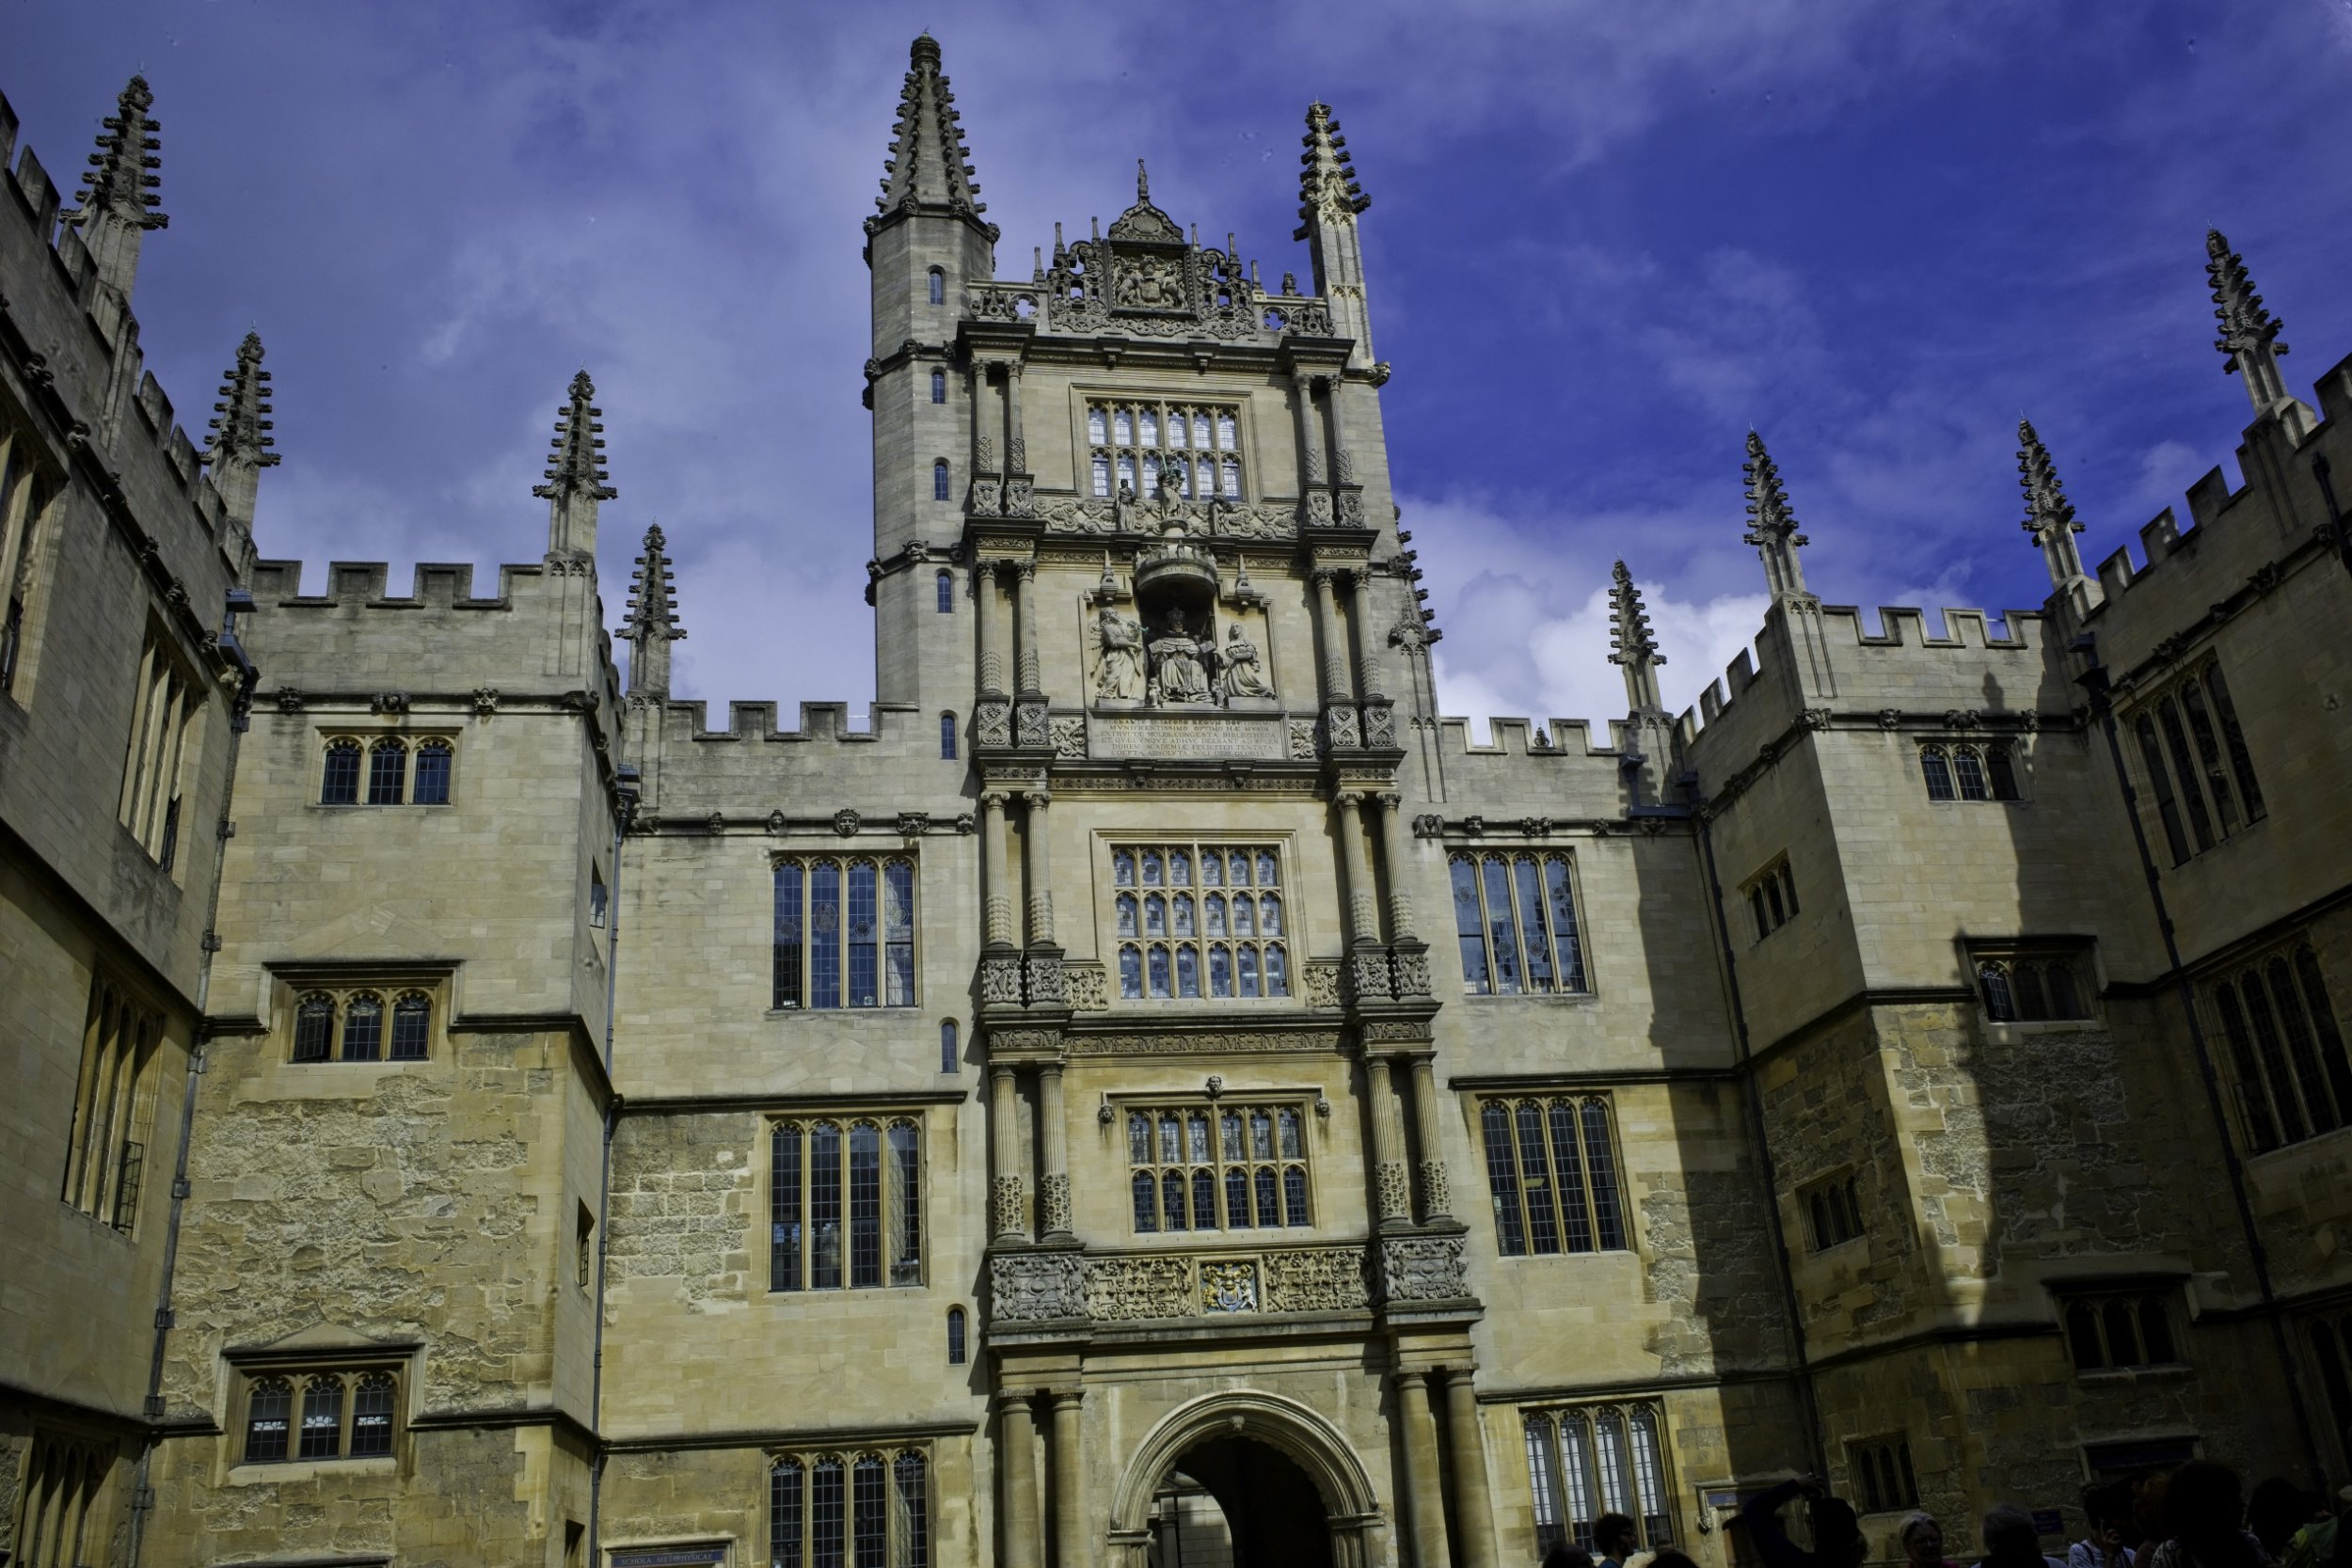 Scabies outbreak at Oxford University